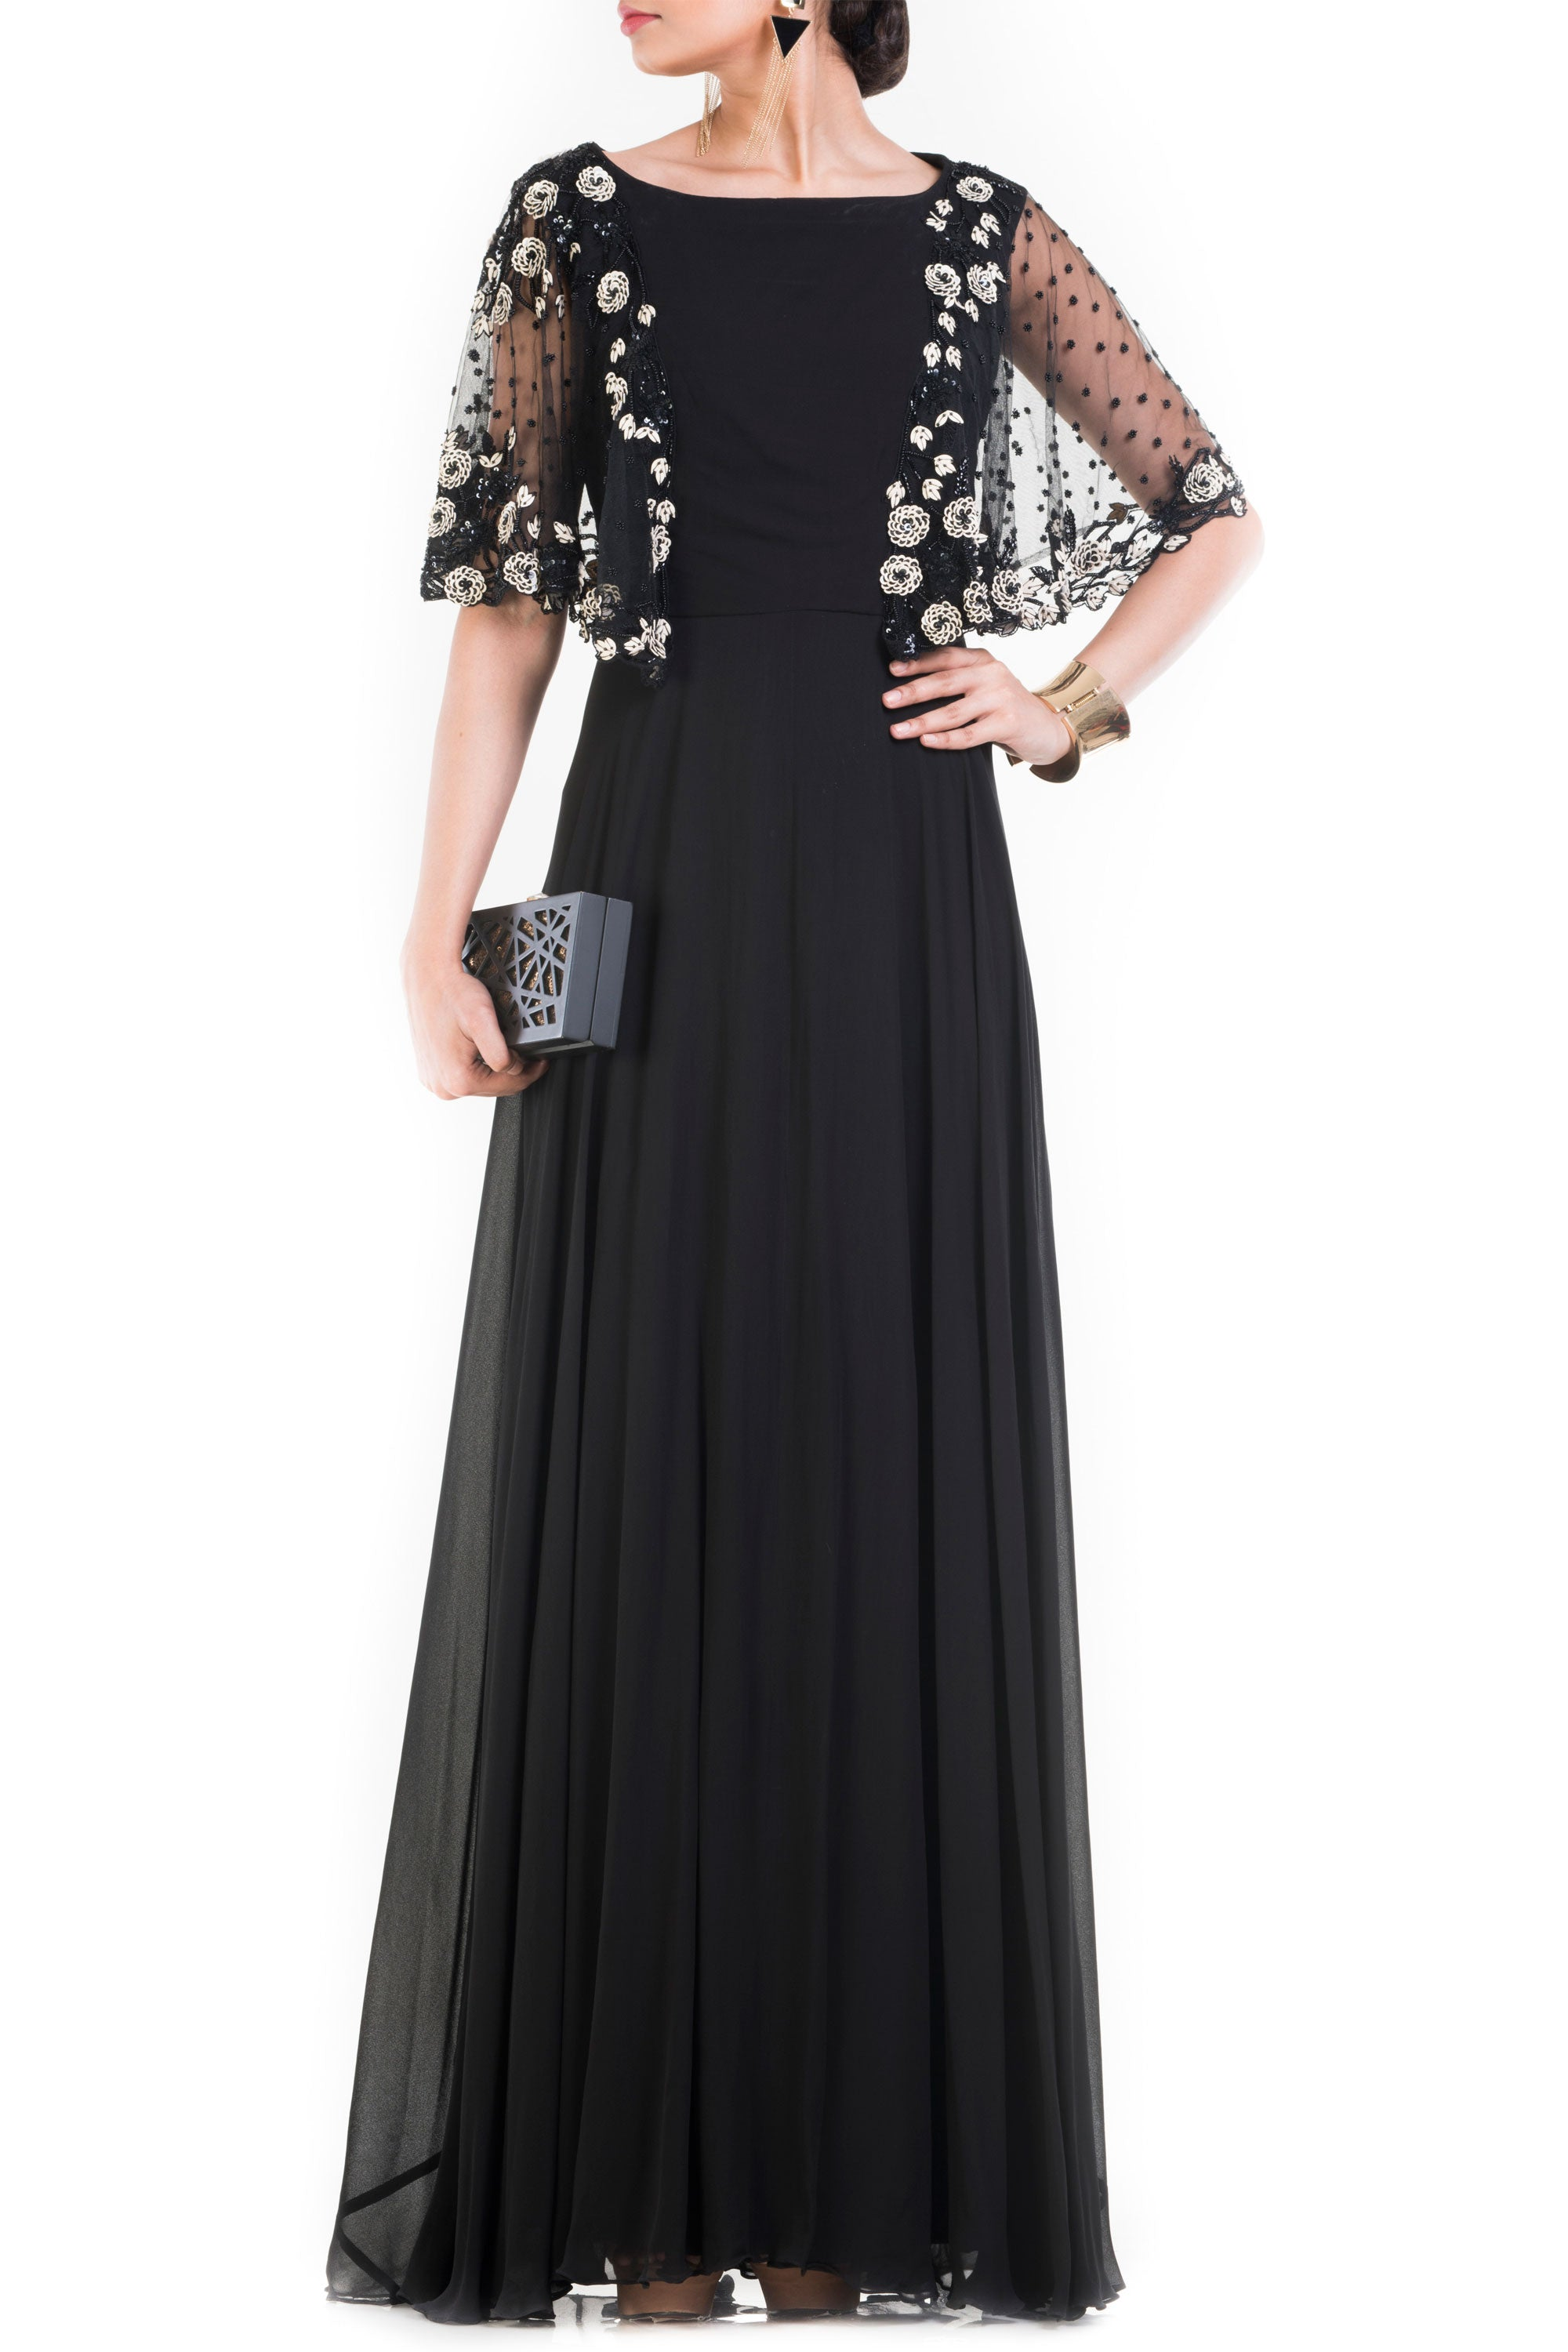 Jet Black Long Dress With Embroidered Half Cape Front